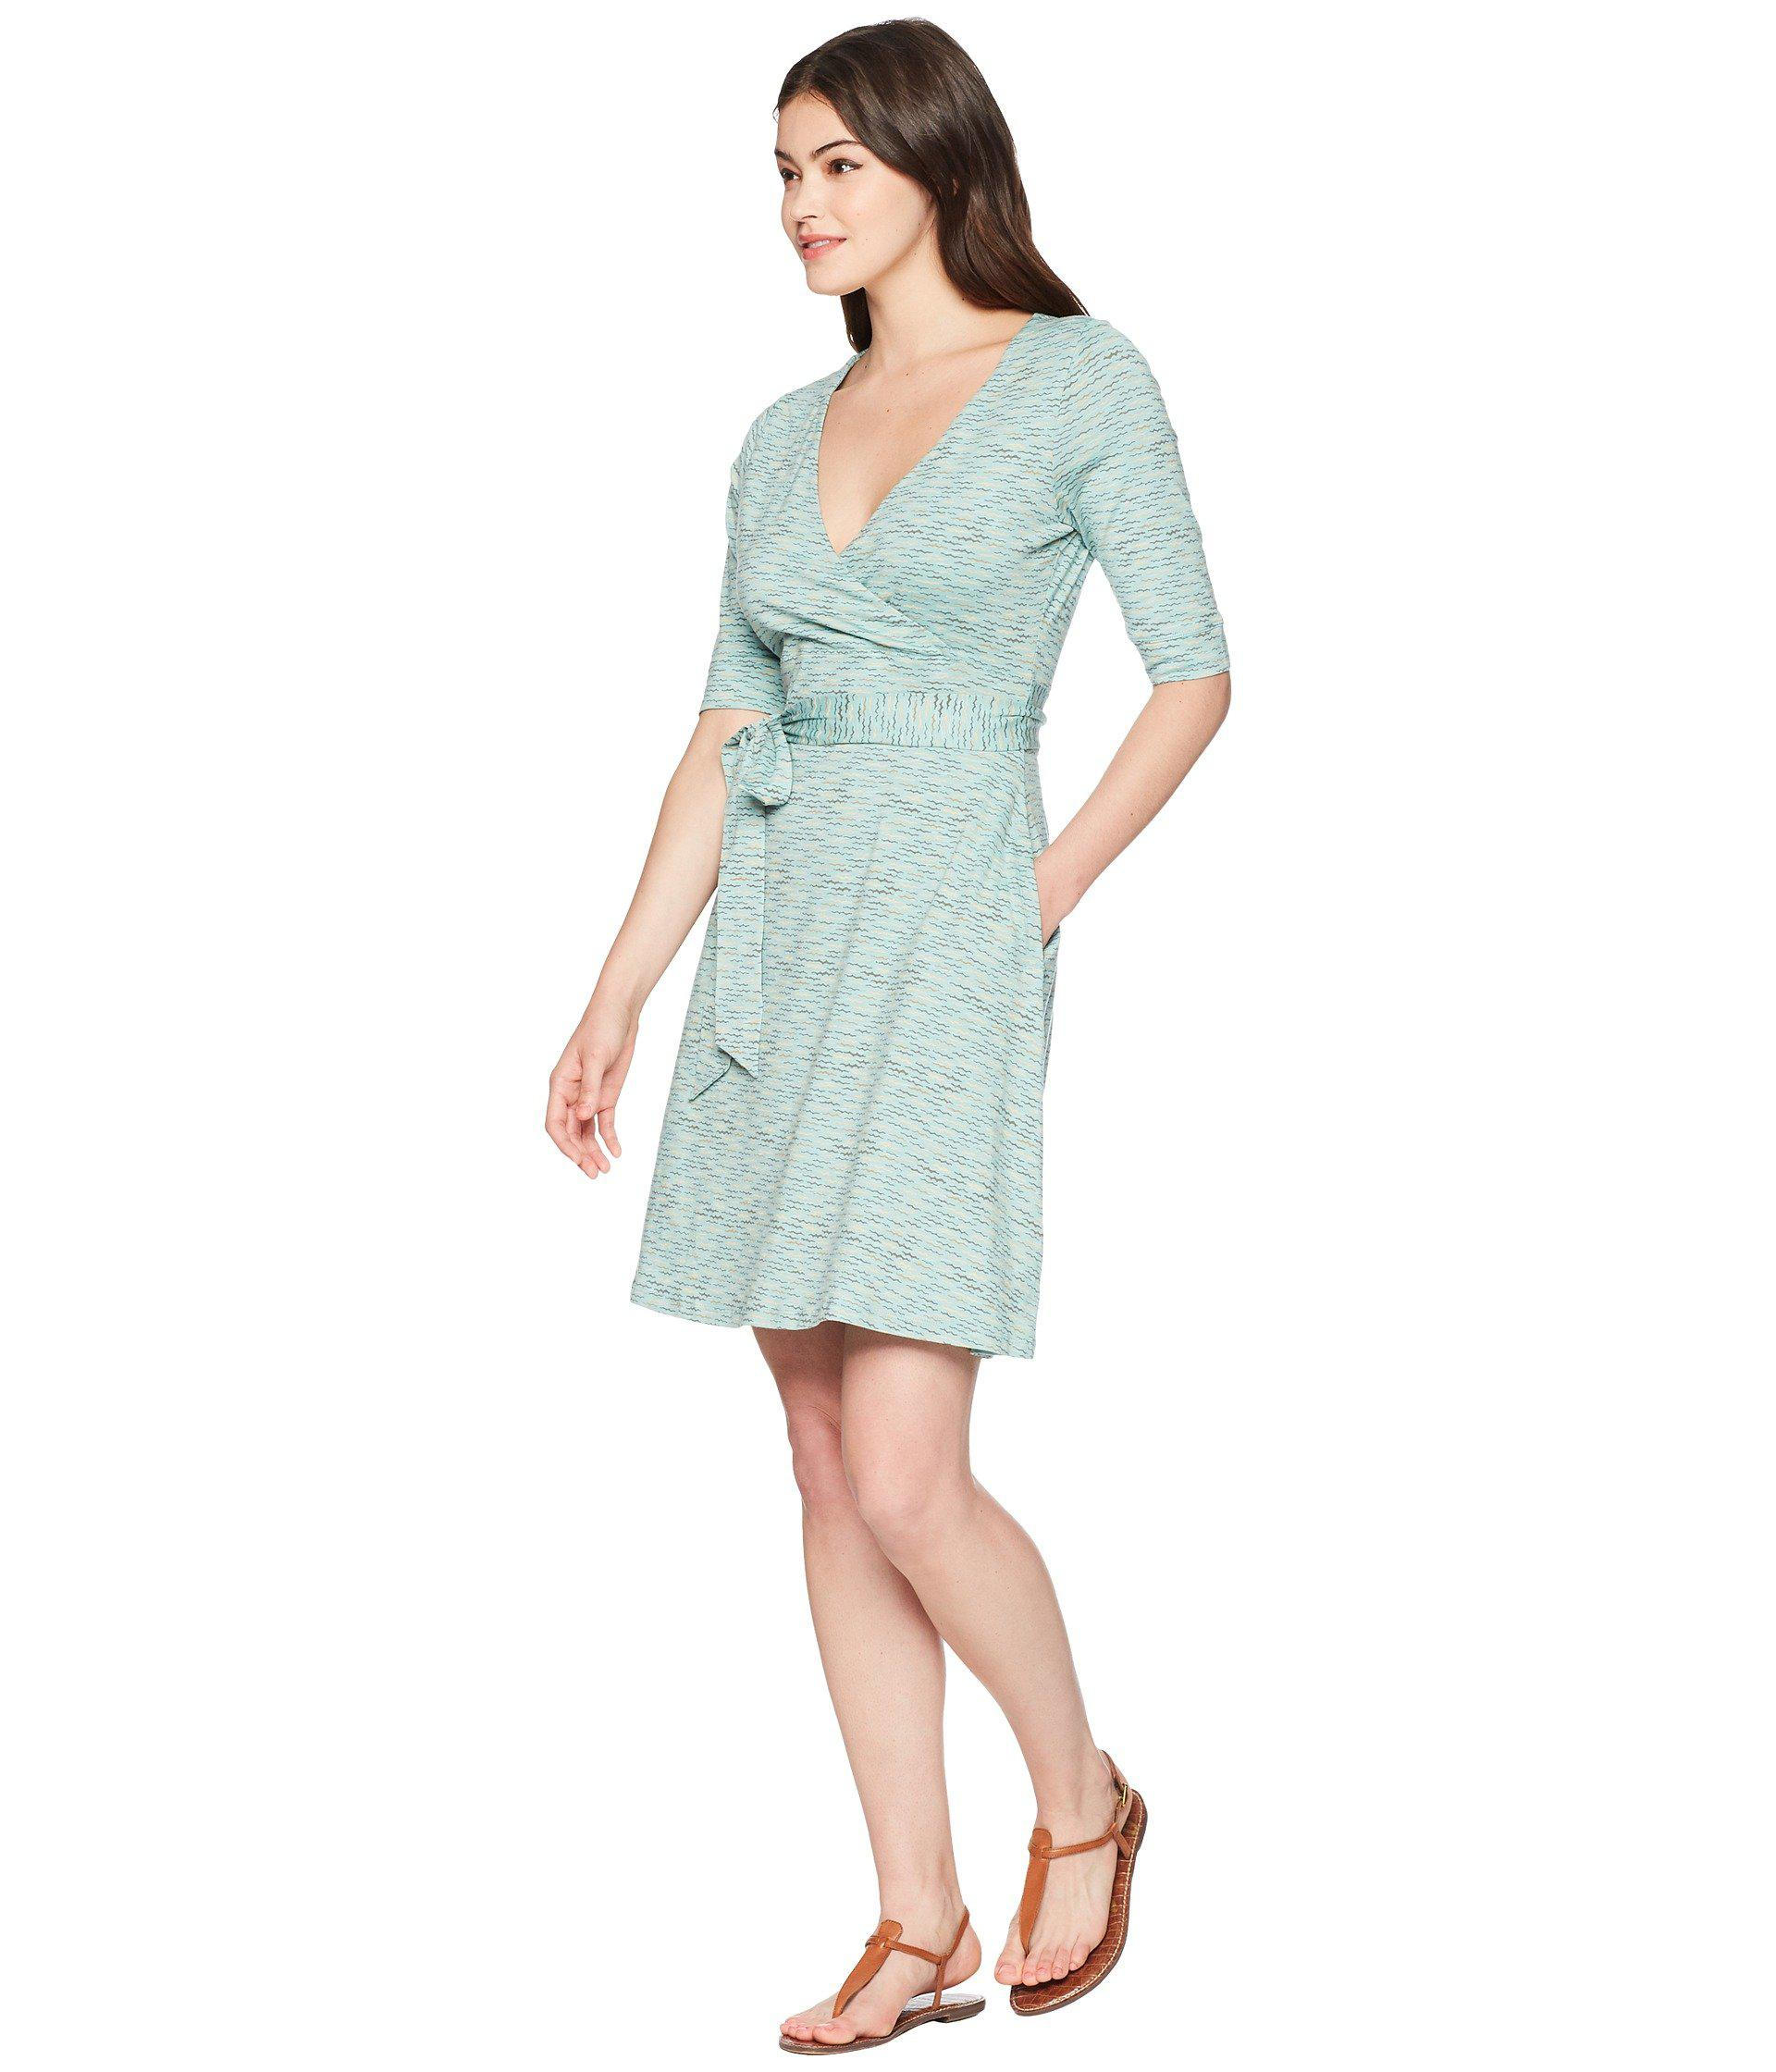 a7031f56cc Toad&Co Cue Wrap Cafe Dress in Blue - Lyst